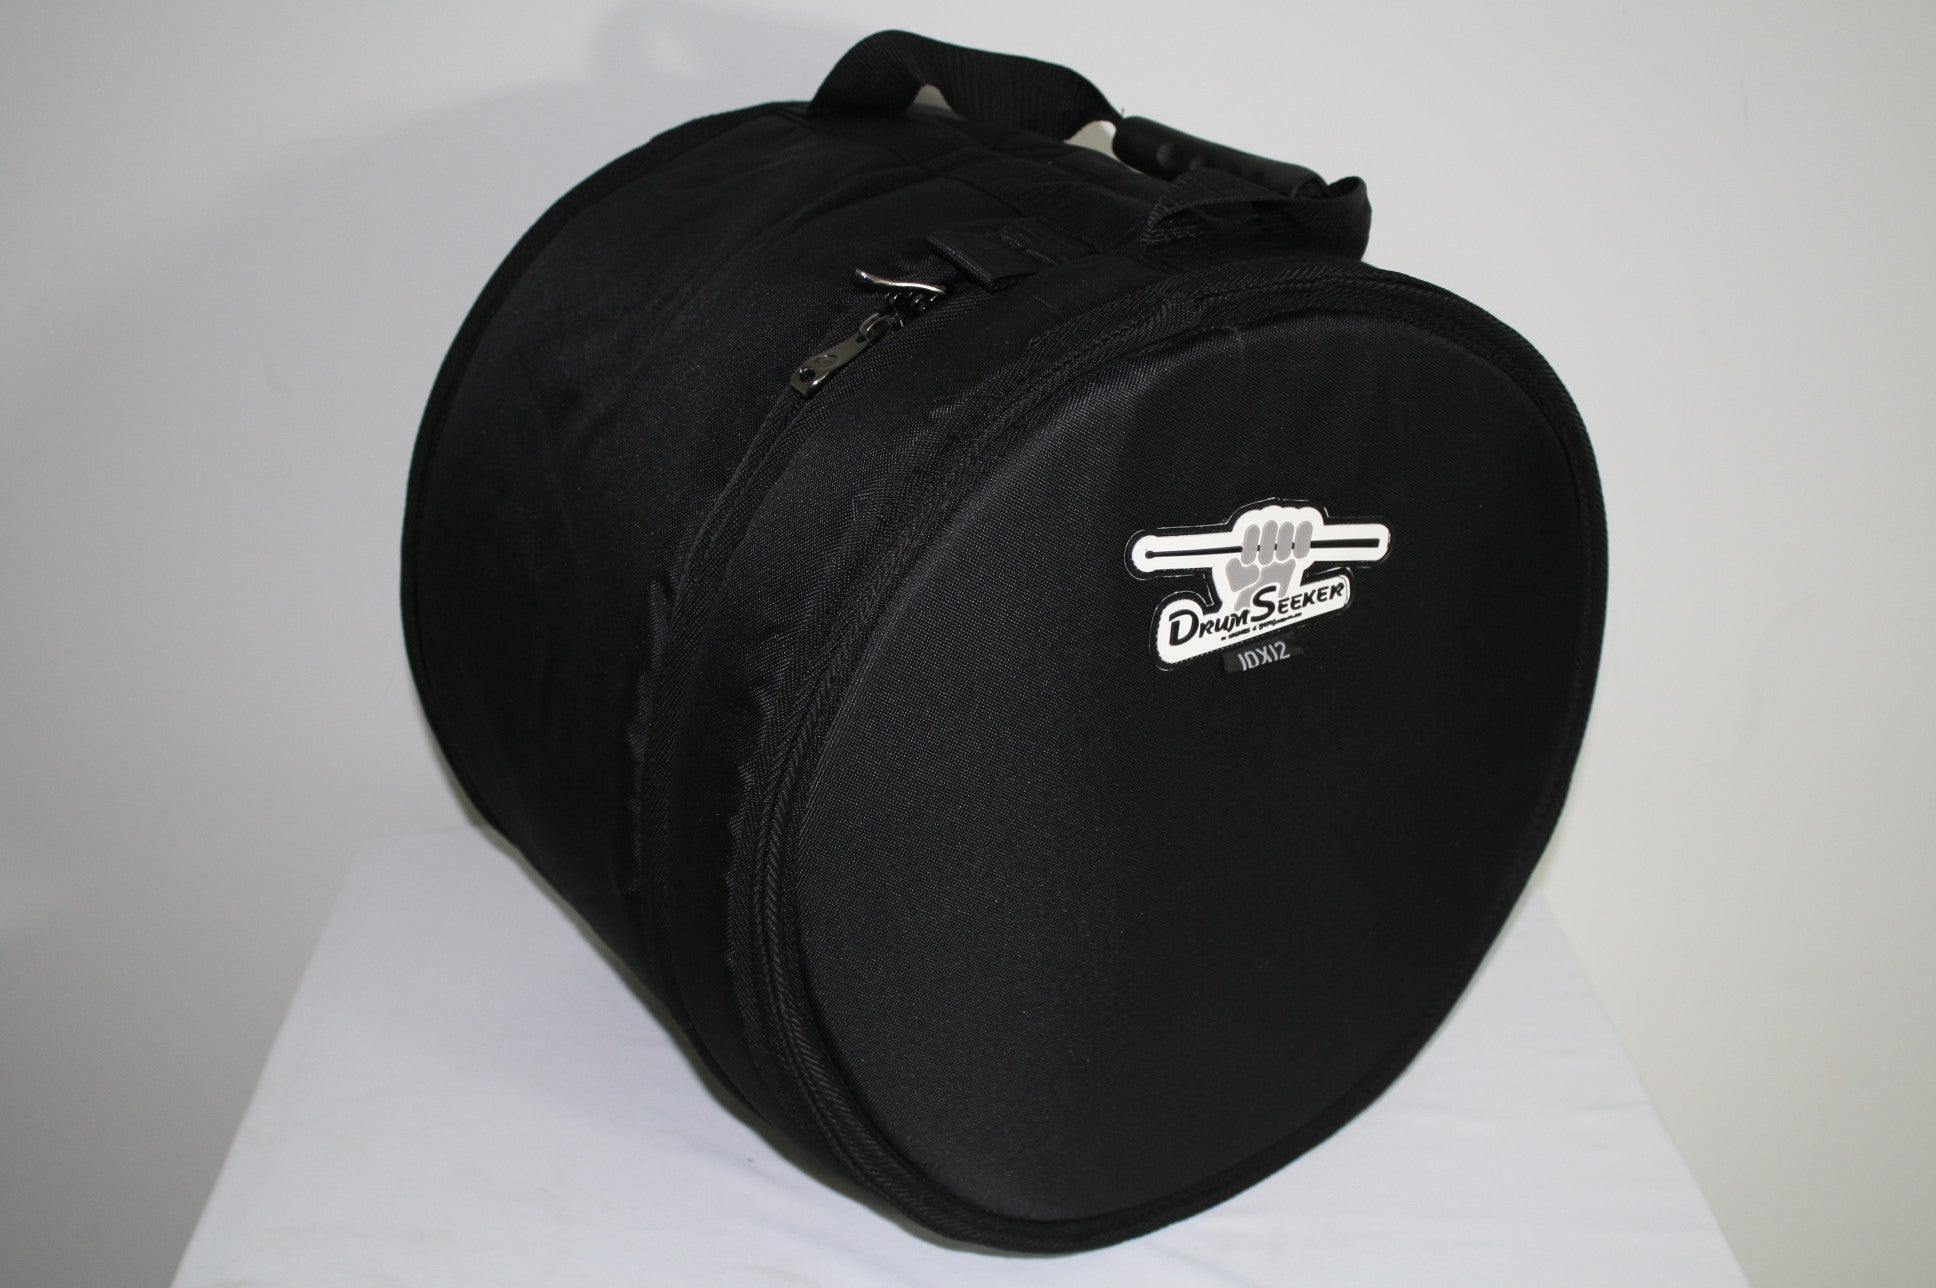 H&B Drum Seeker 7 x 13 Inches Snare Drum Bag